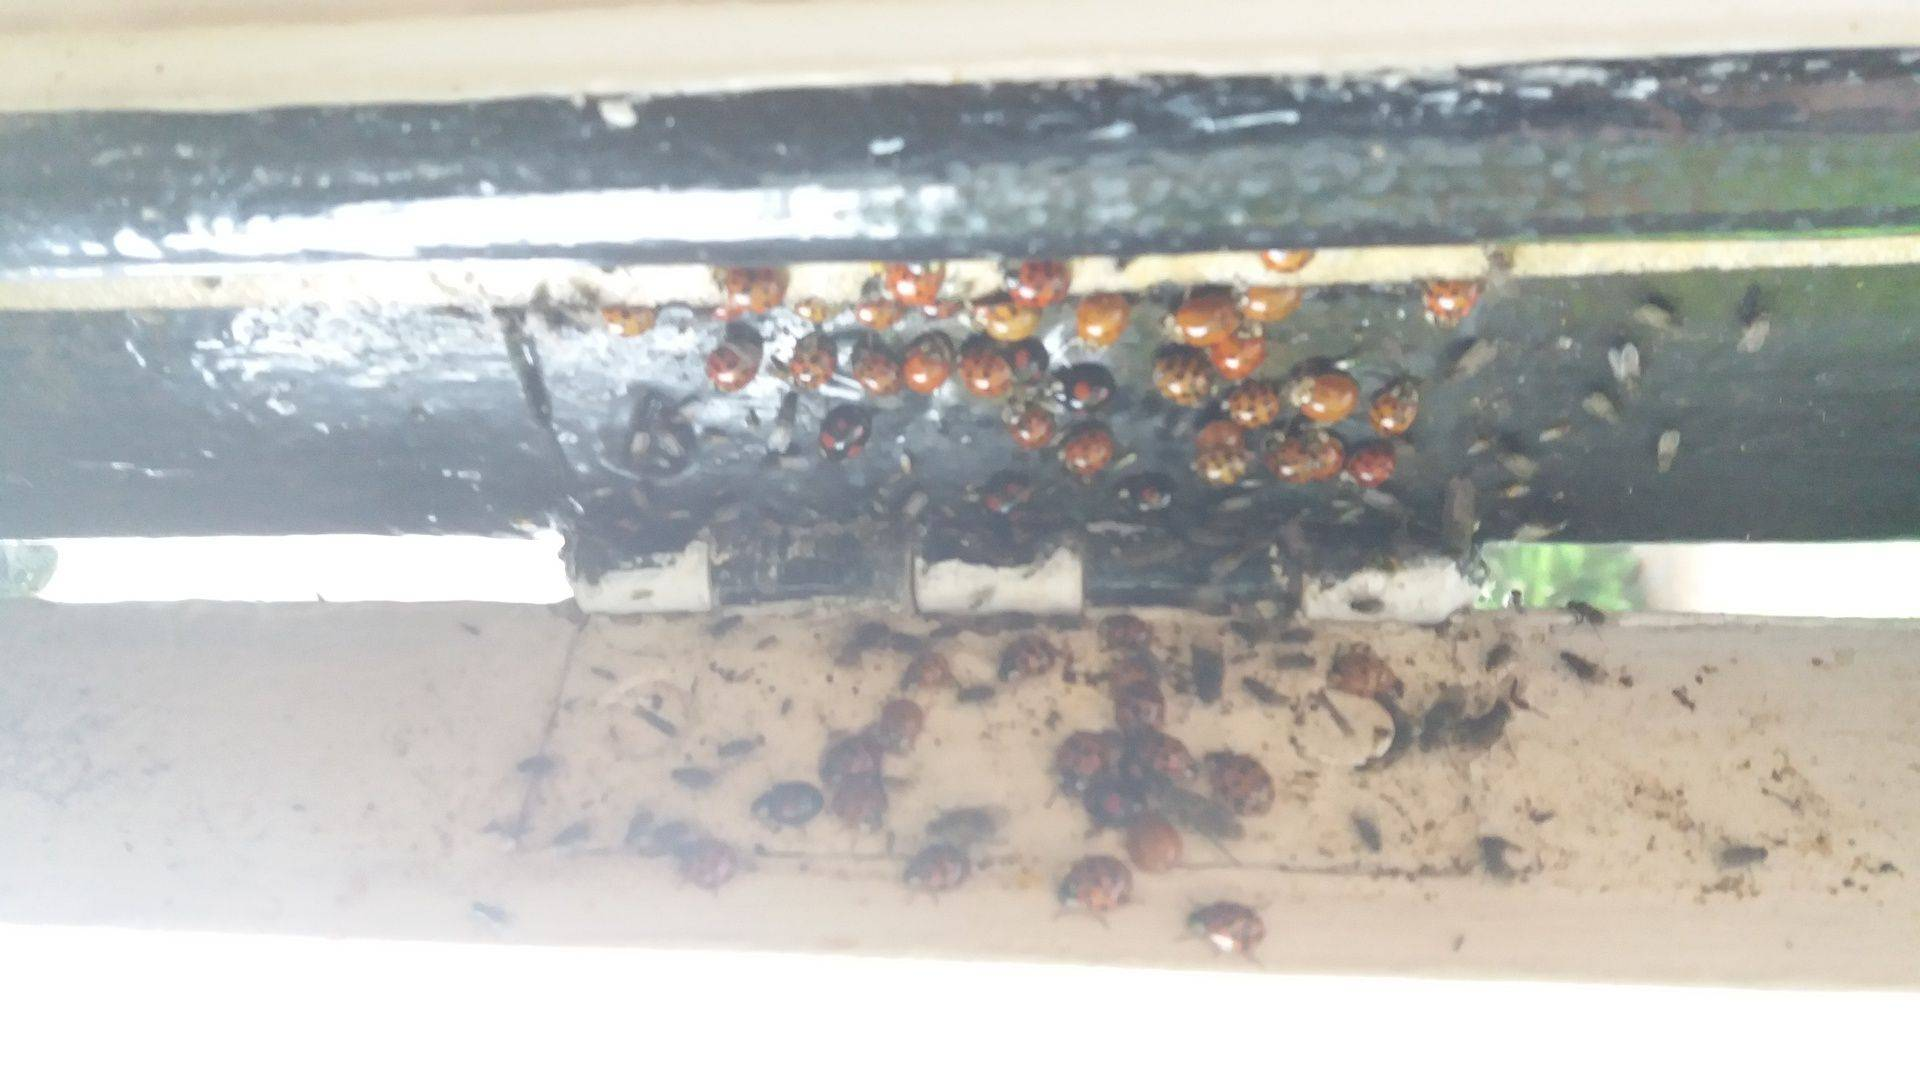 a swarm of bees in Ipswich